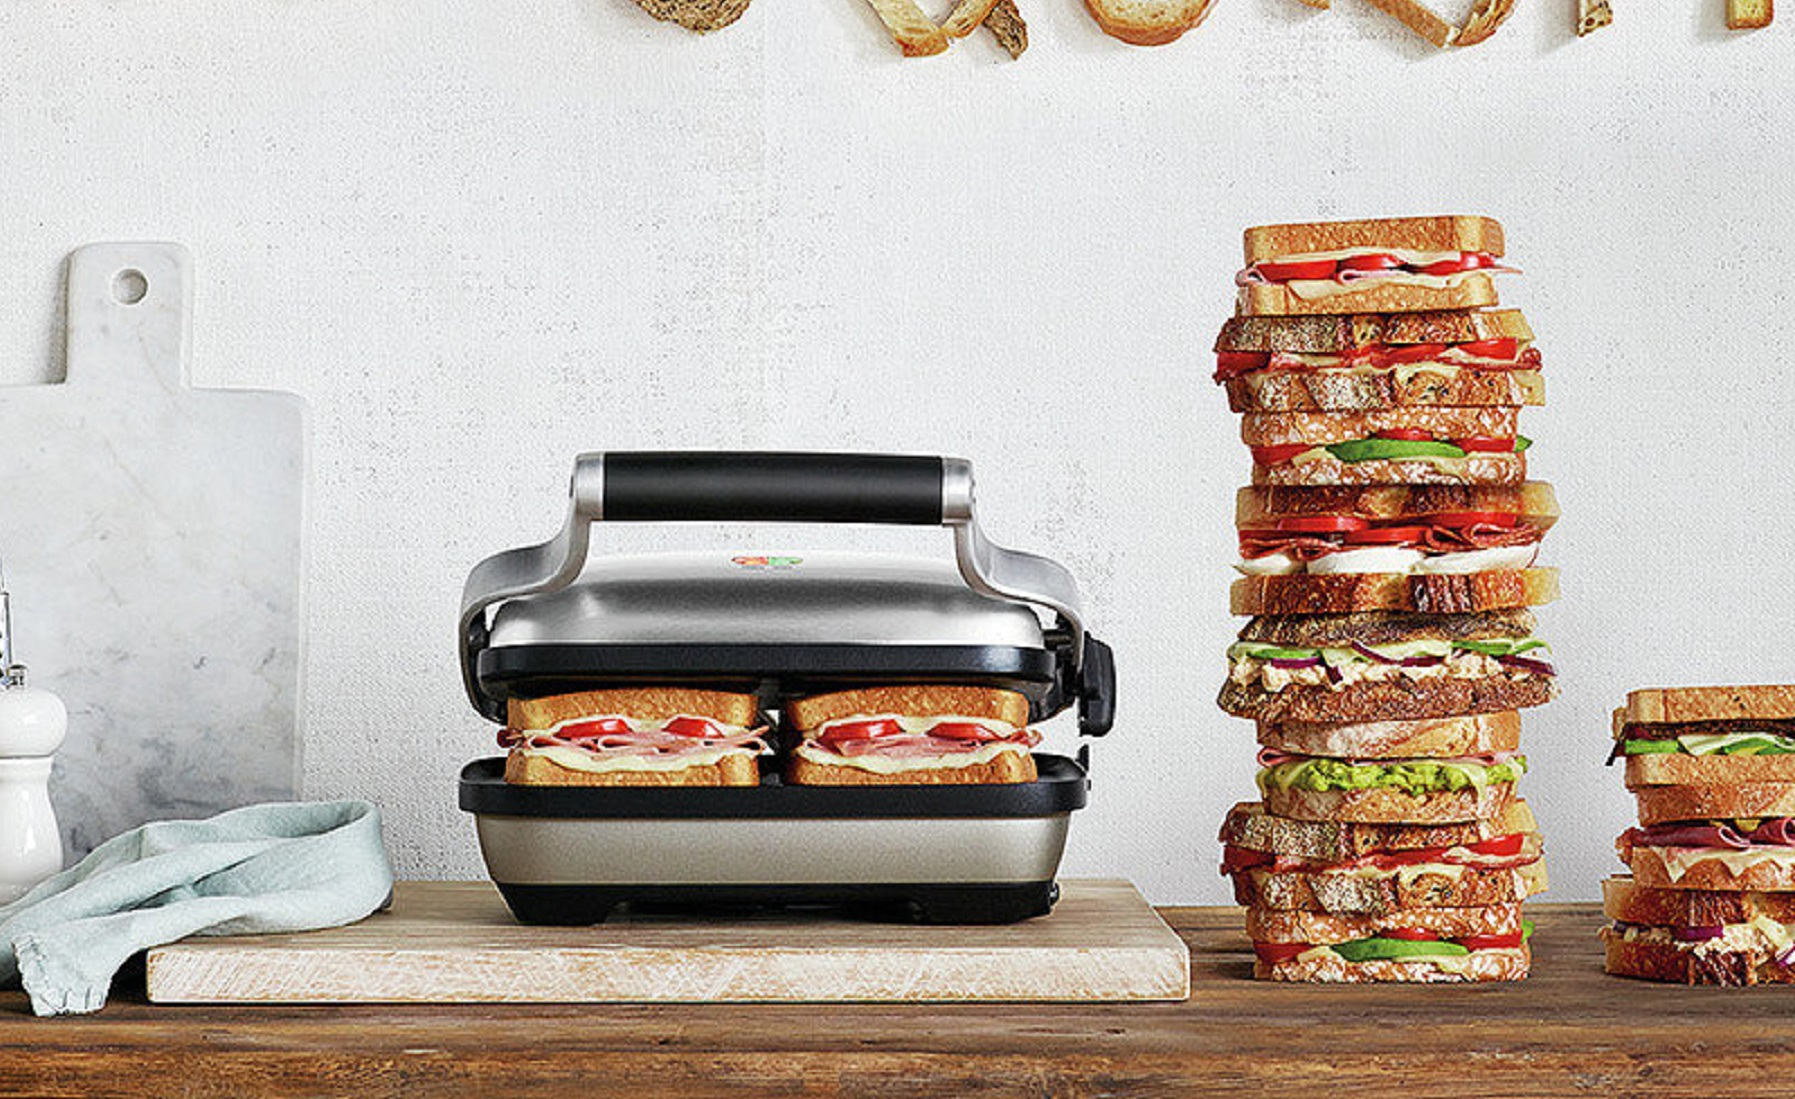 NEW  2 SLICE ELECTRIC SANDWICH MAKER TOASTER TOASTIES NON STICK GRILL PRESS 700W